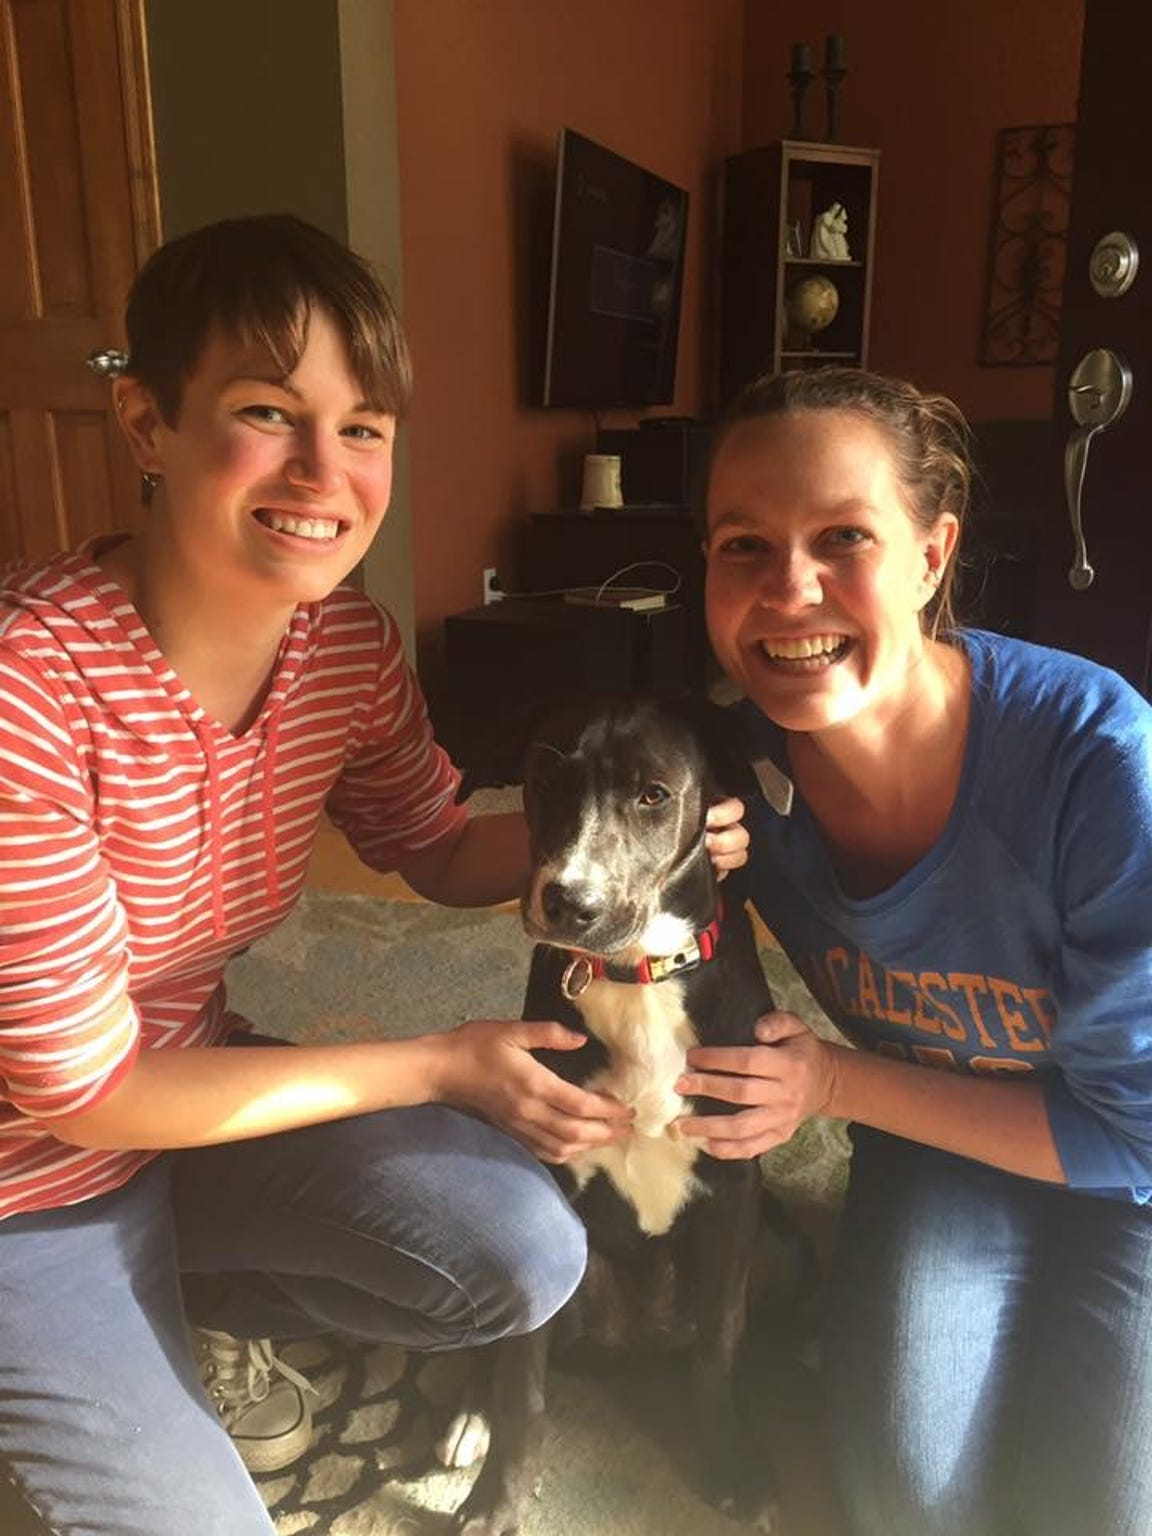 Christine Popp (left) and Beth Decker with their dog